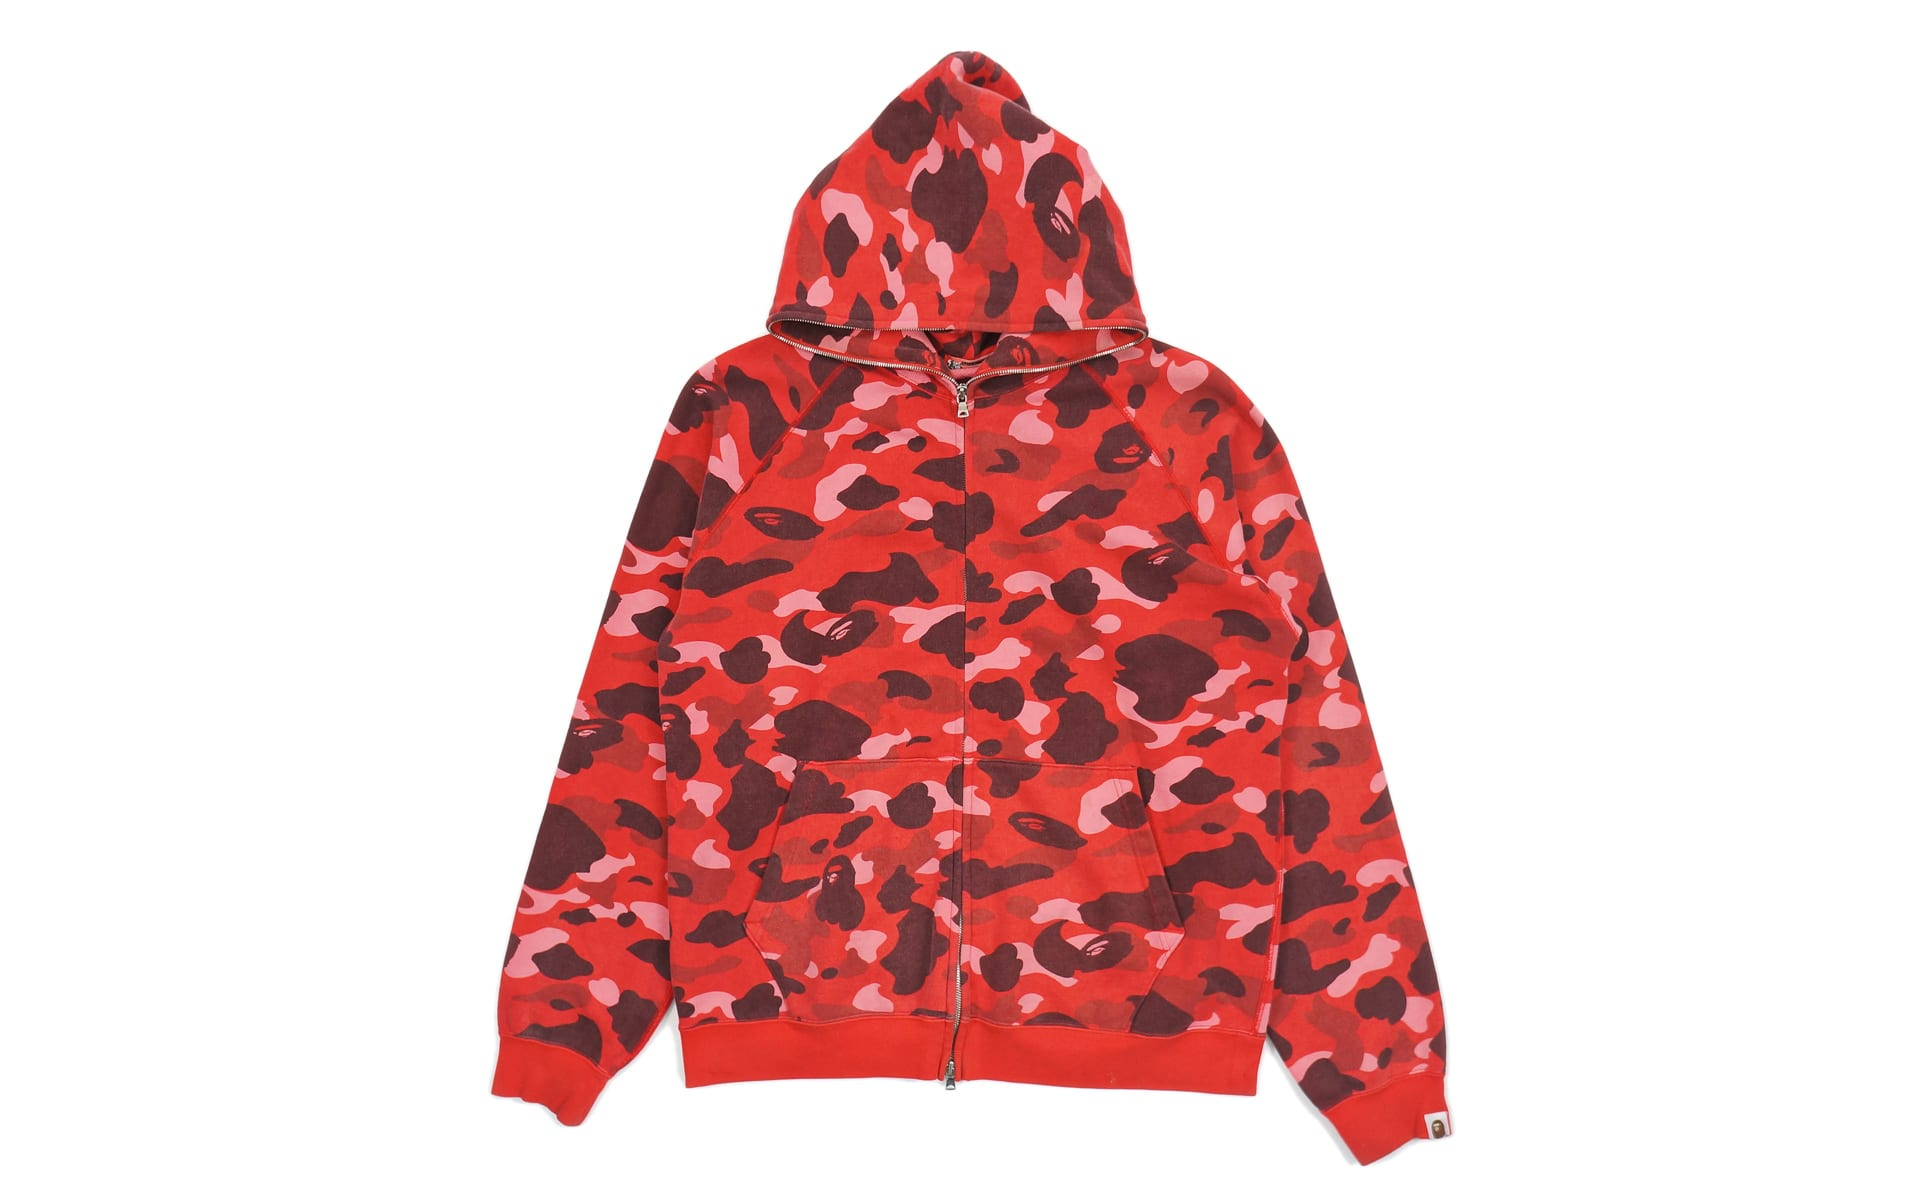 92f9e33df The 25 Best Bape Items | Complex